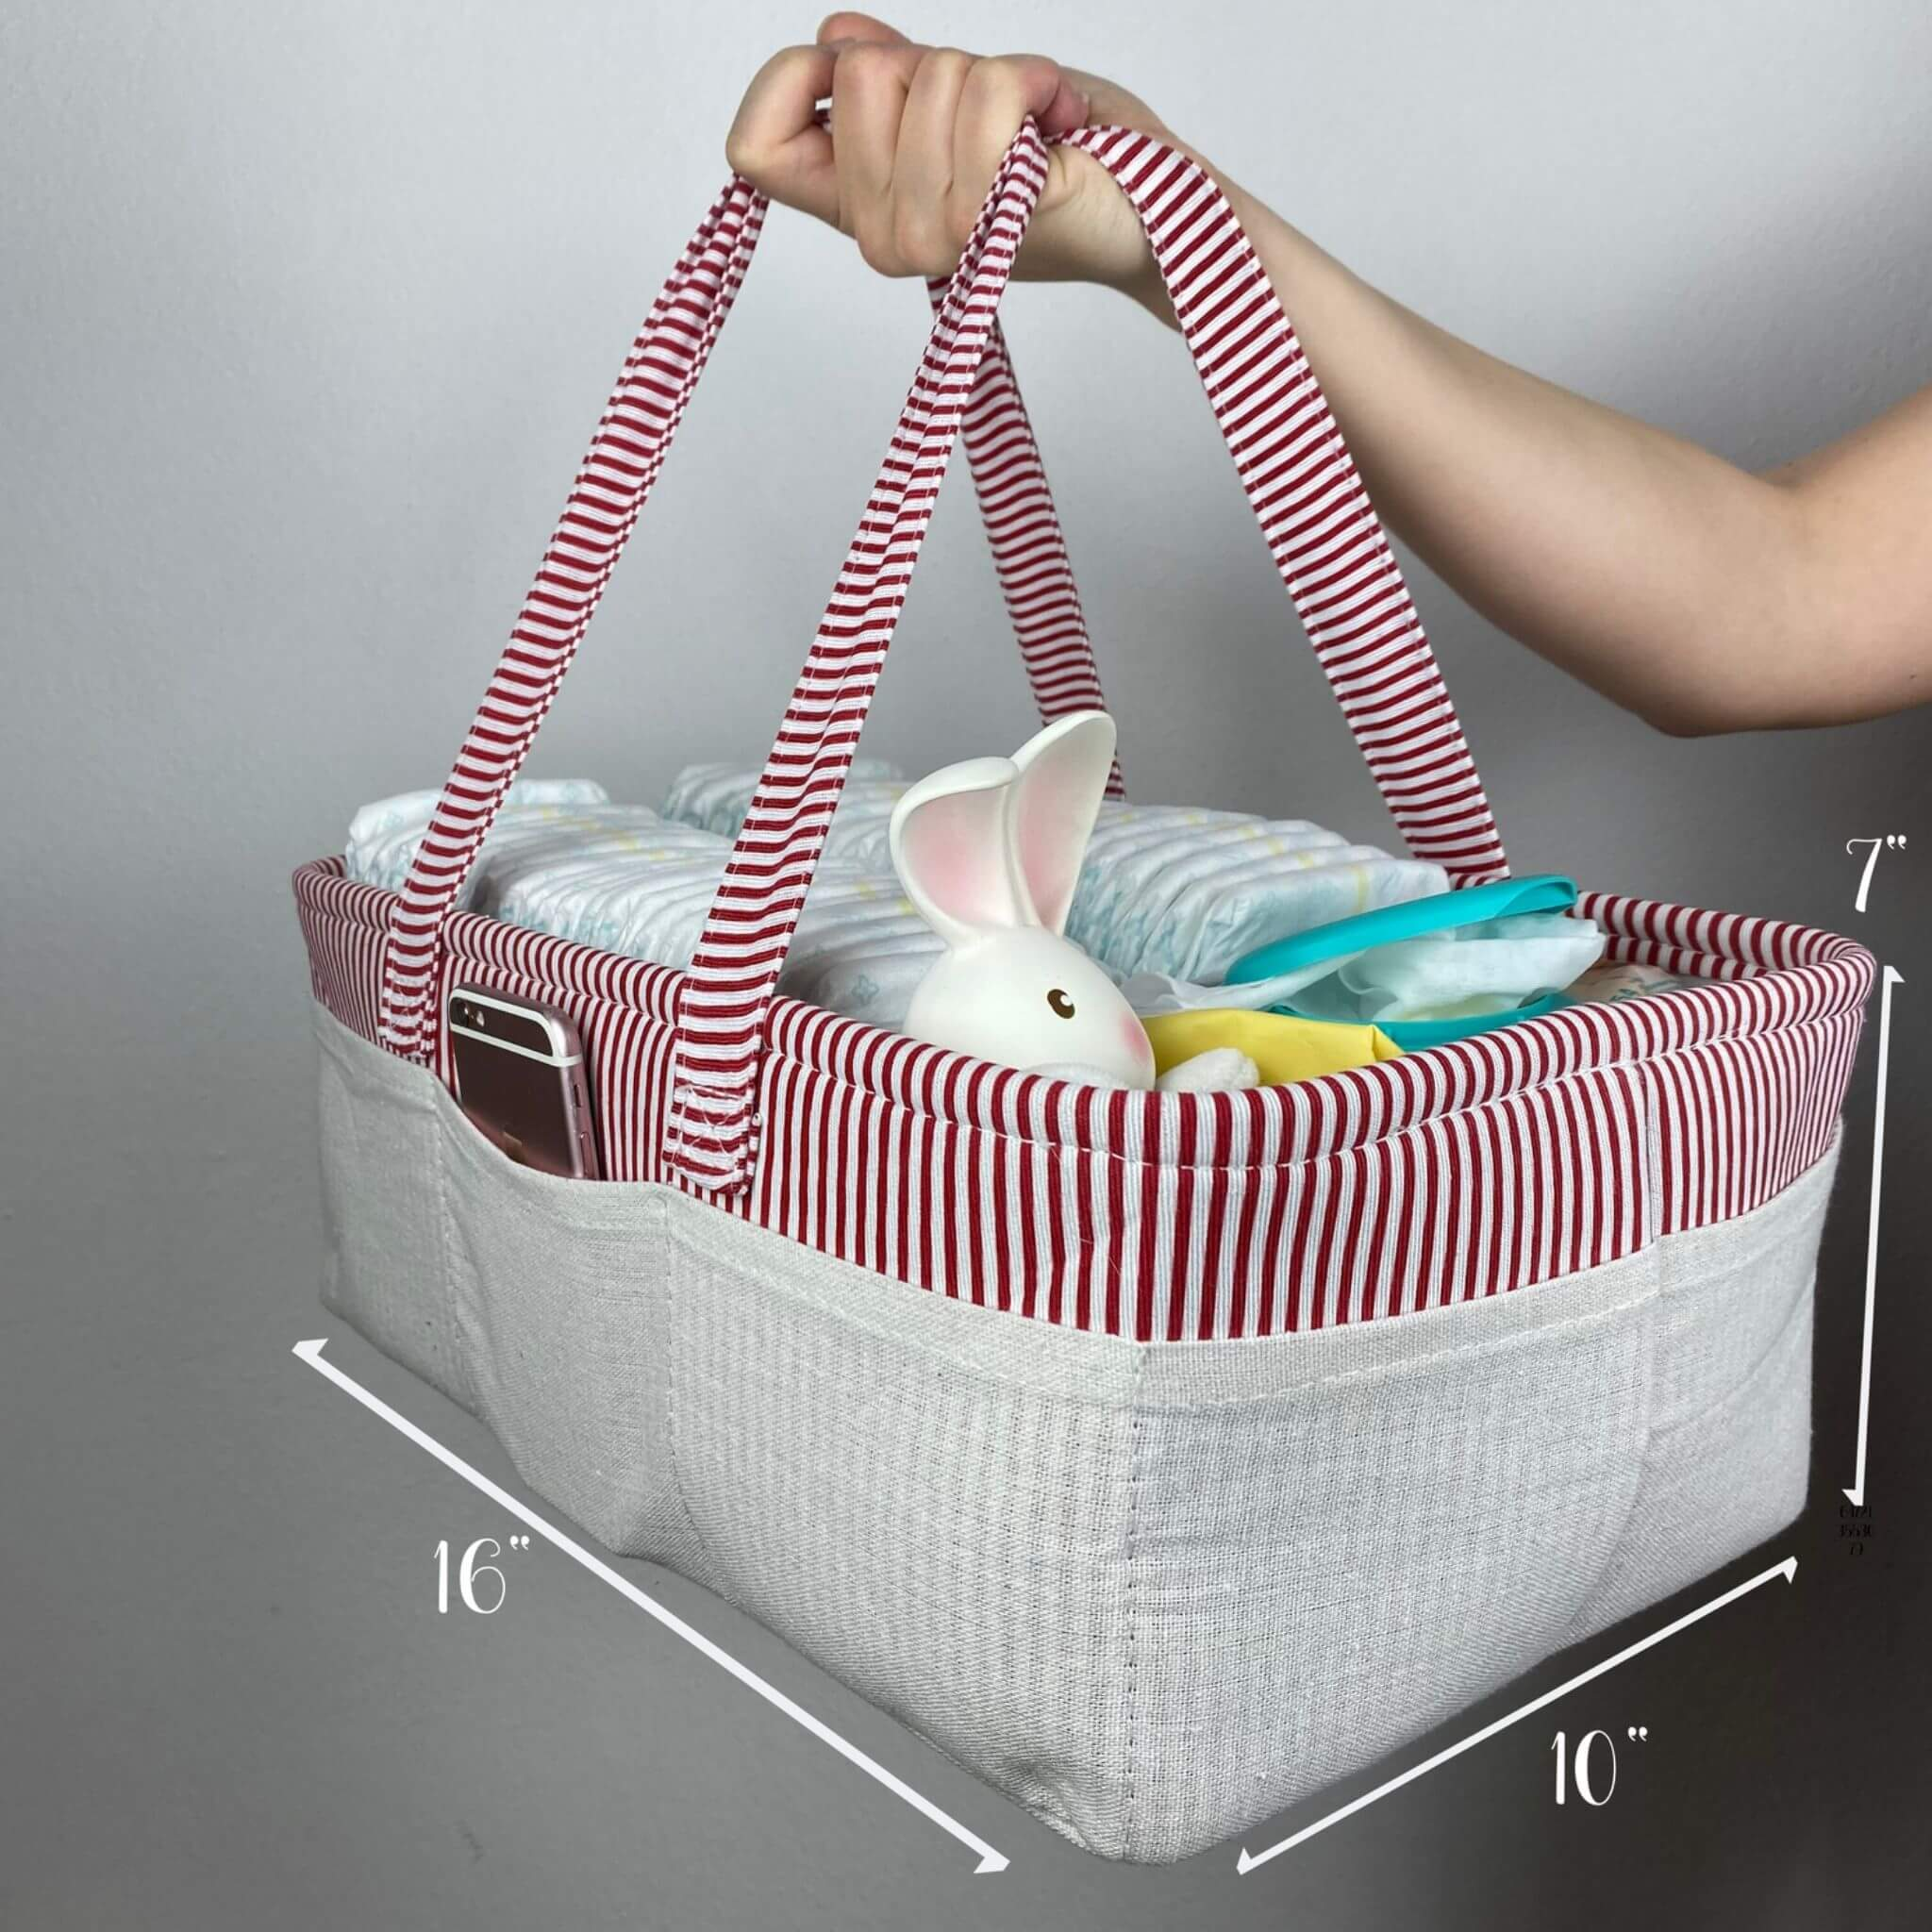 large diaper caddy red from we care vida